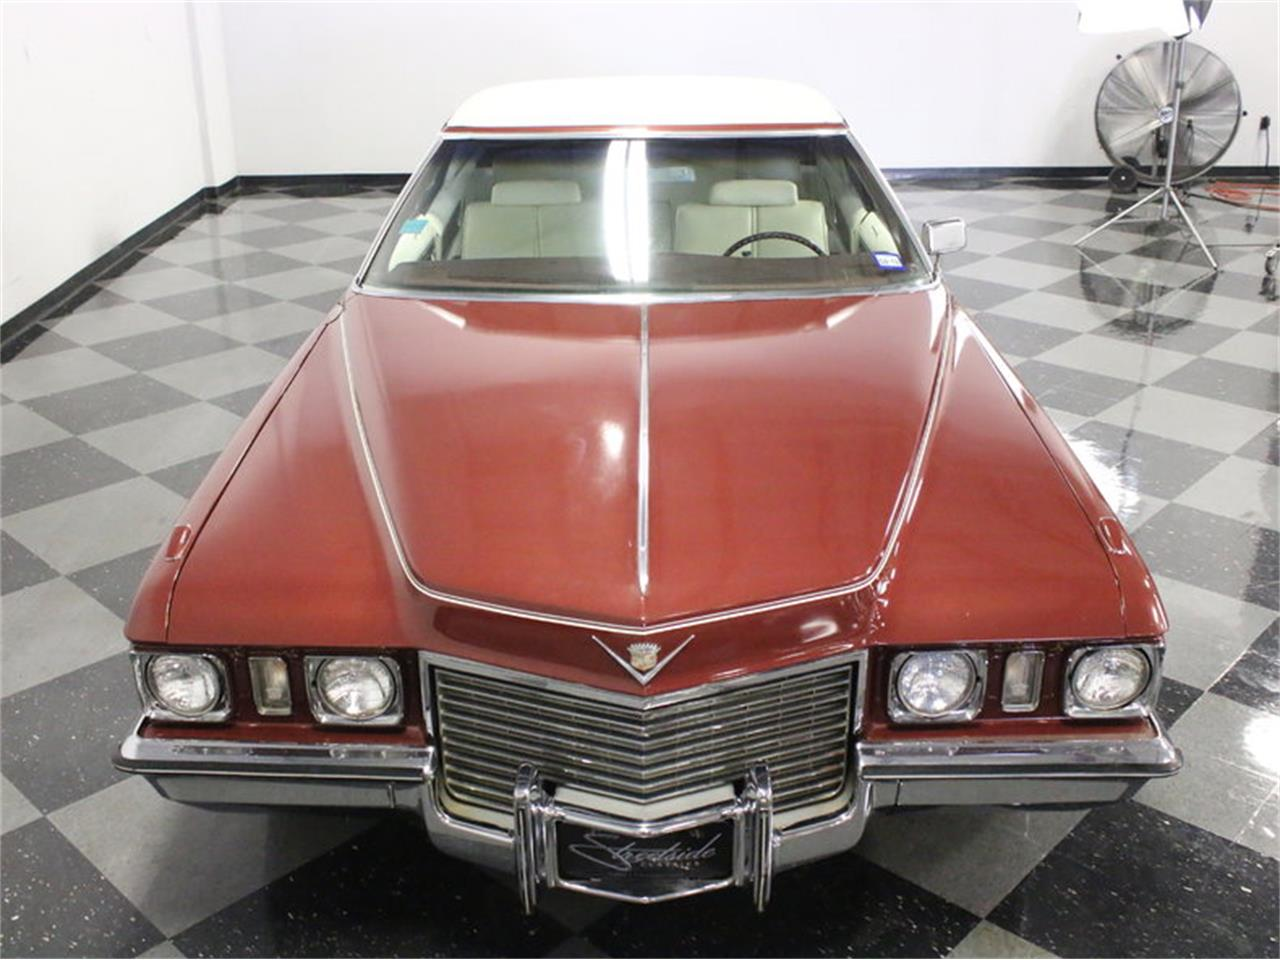 Large Picture of Classic 1972 Cadillac Coupe DeVille located in Ft Worth Texas Offered by Streetside Classics - Dallas / Fort Worth - L1A0